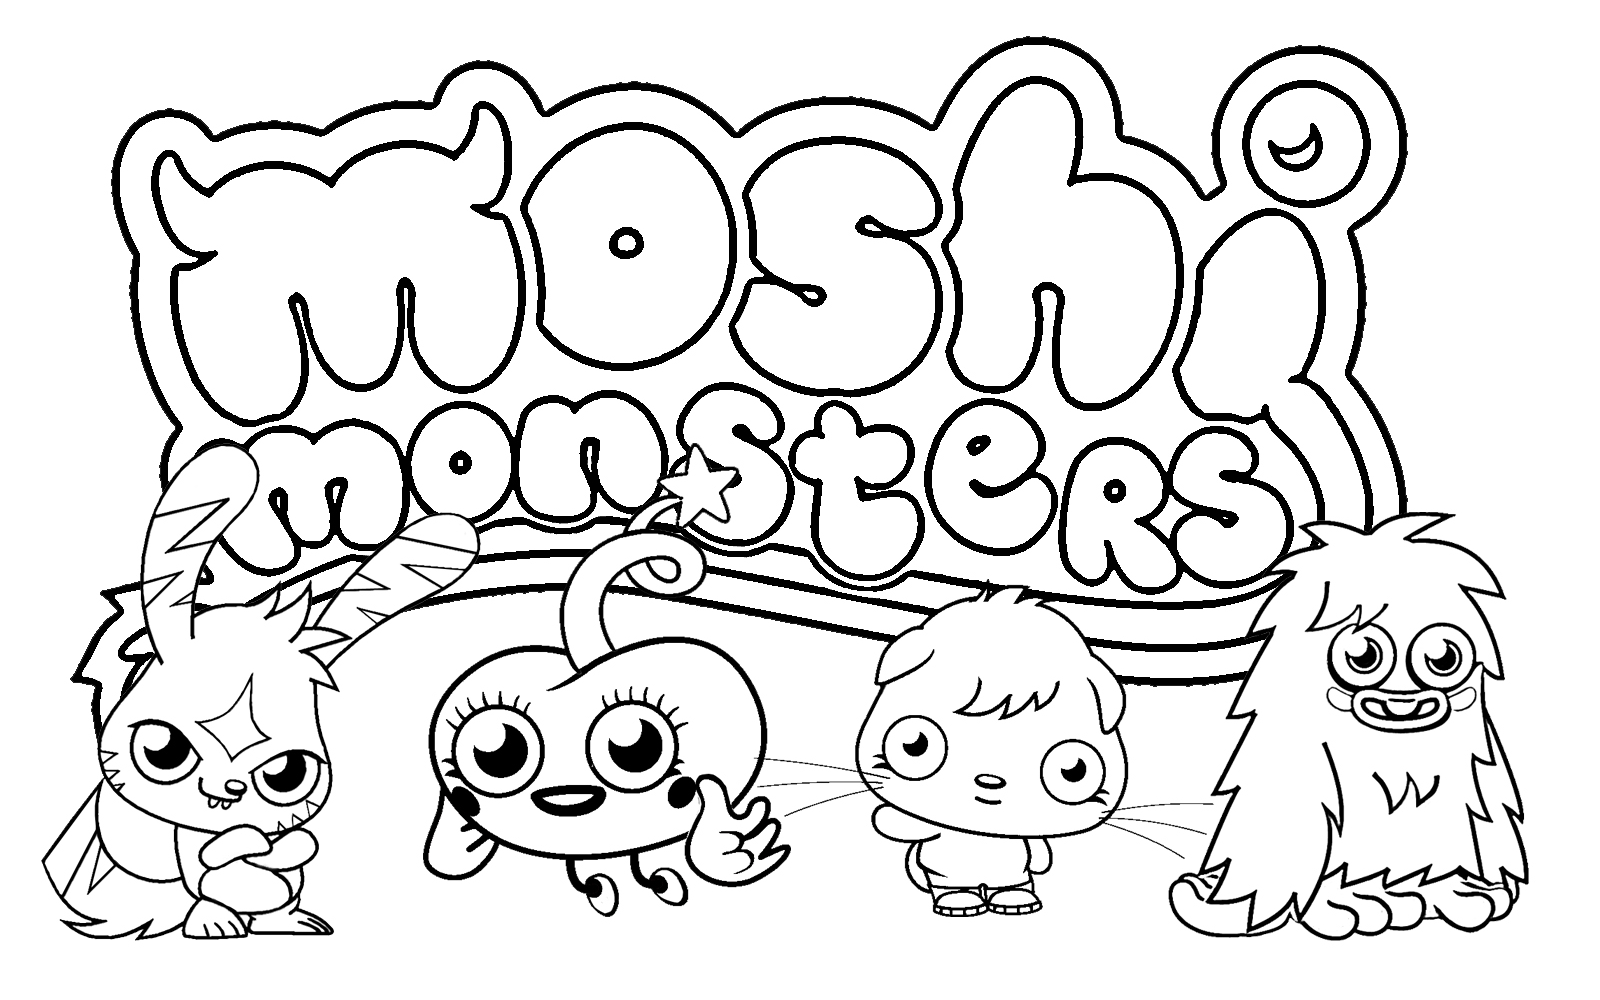 free printable moshi monster coloring pages for kids - Monsters Coloring Pages Printable